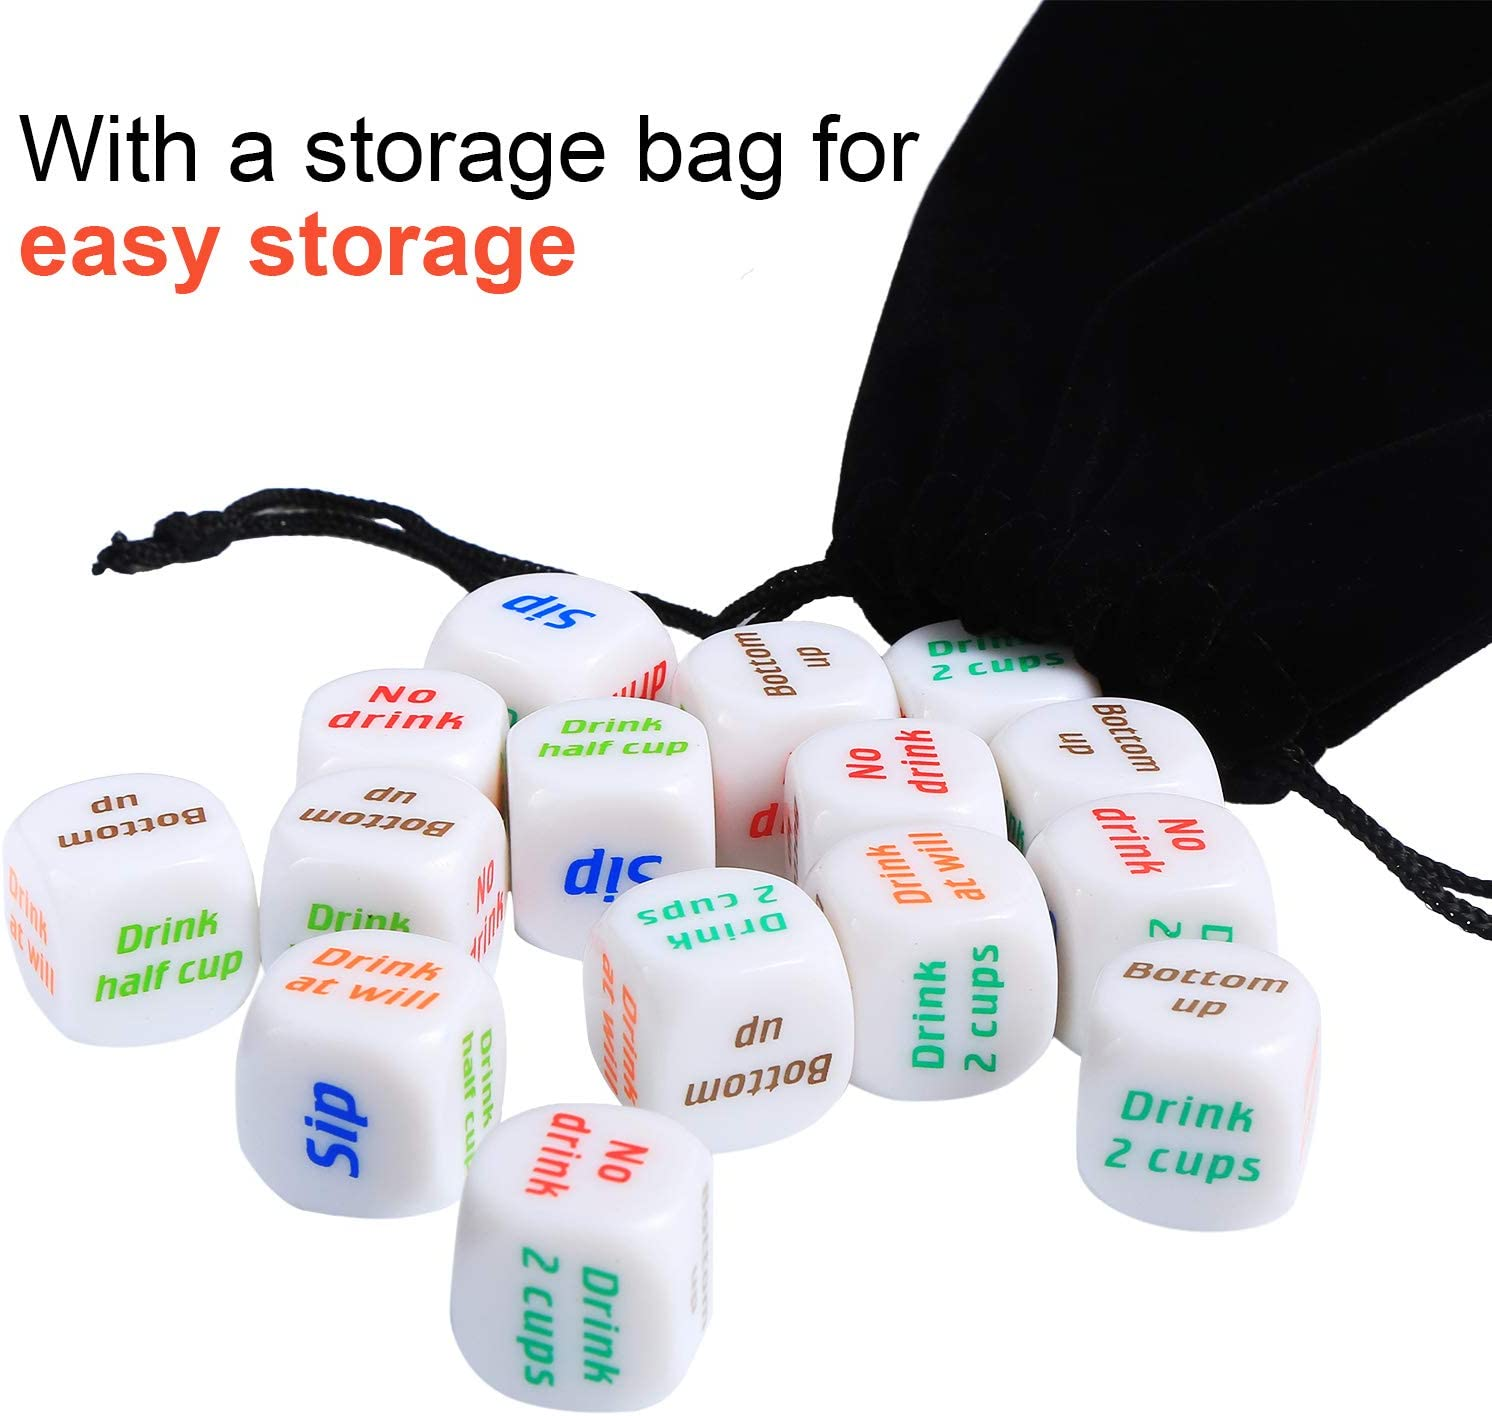 15 Pieces Funny Drinking Dice Novelty Bar Dice Party Supplies for Newlyweds Wedding Bachelor Party Toys